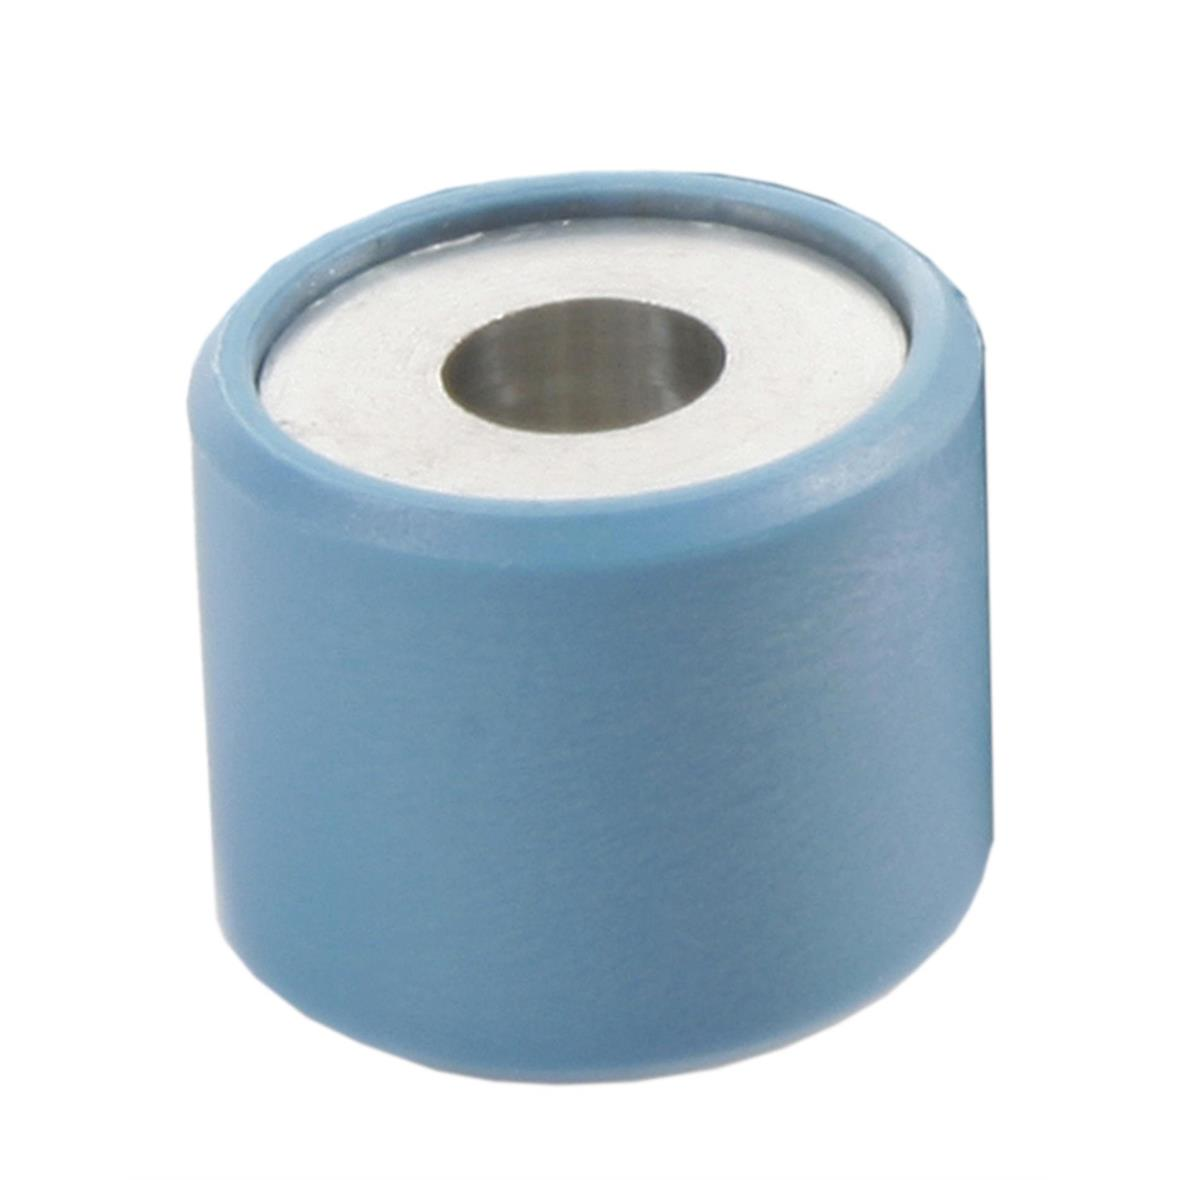 Product image for 'Variator Roll PIAGGIO 21x17 mm 12,0gTitle'